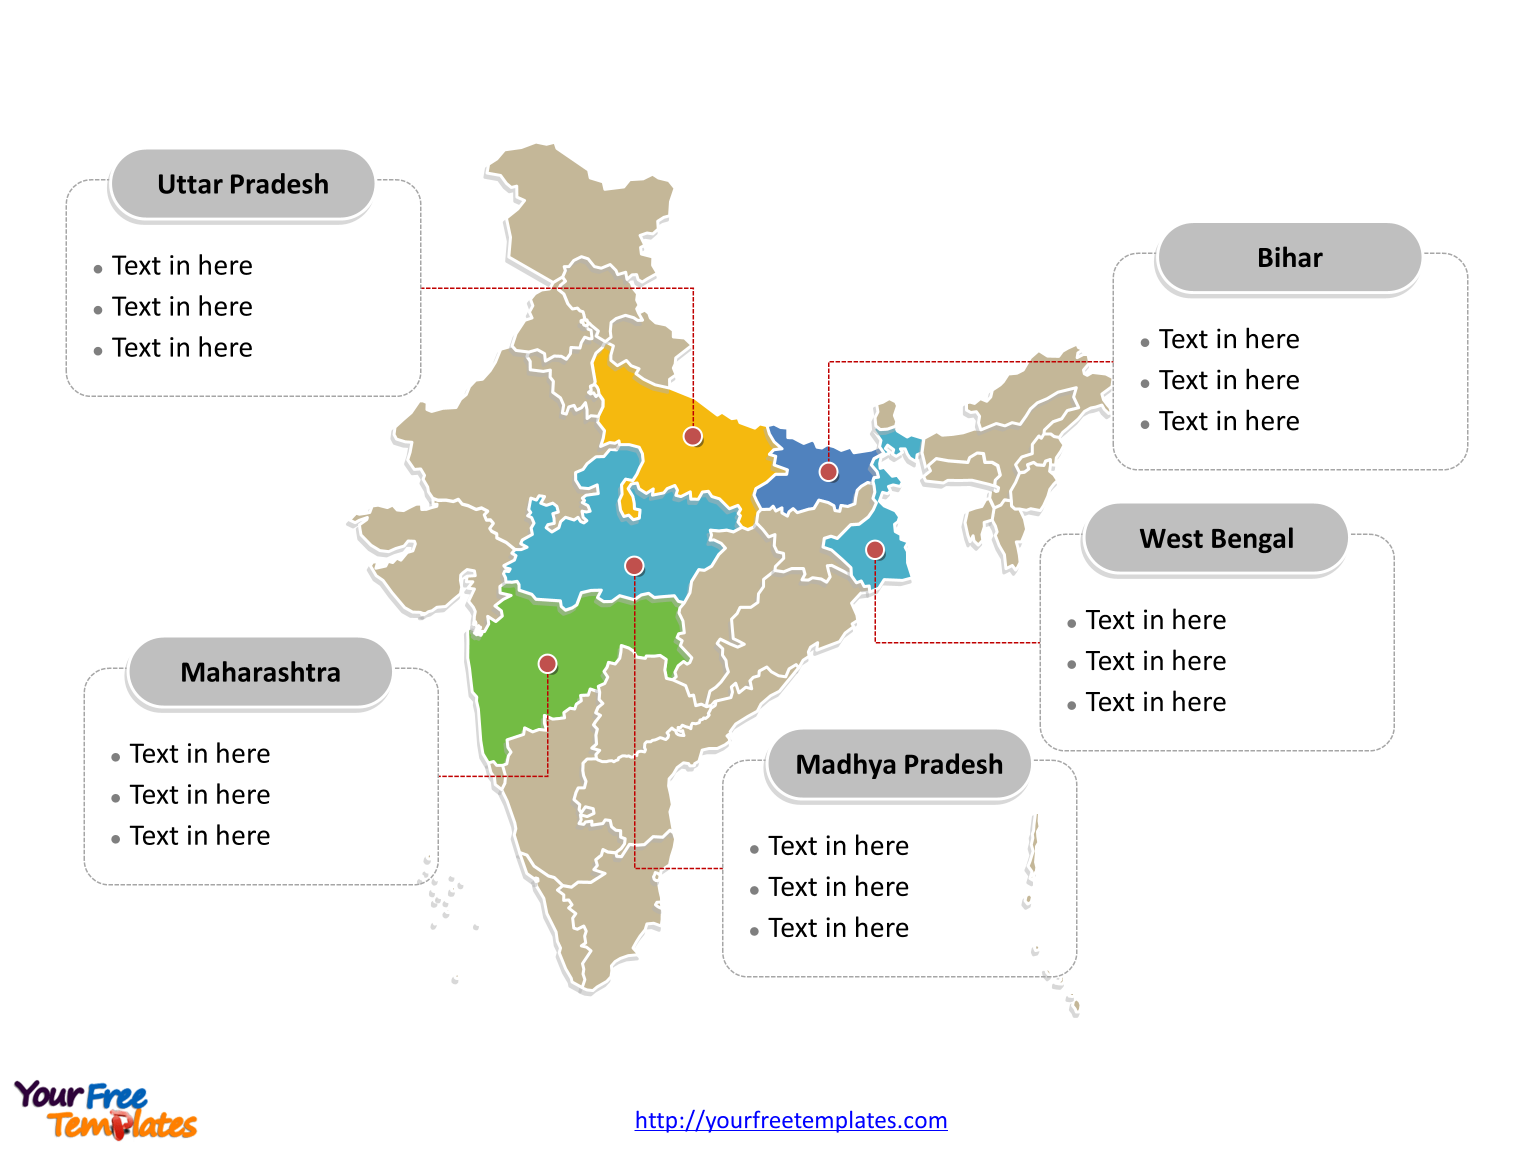 India map blank templates free powerpoint templates map of india with political division and major states labeled on the india map blank templates gumiabroncs Image collections